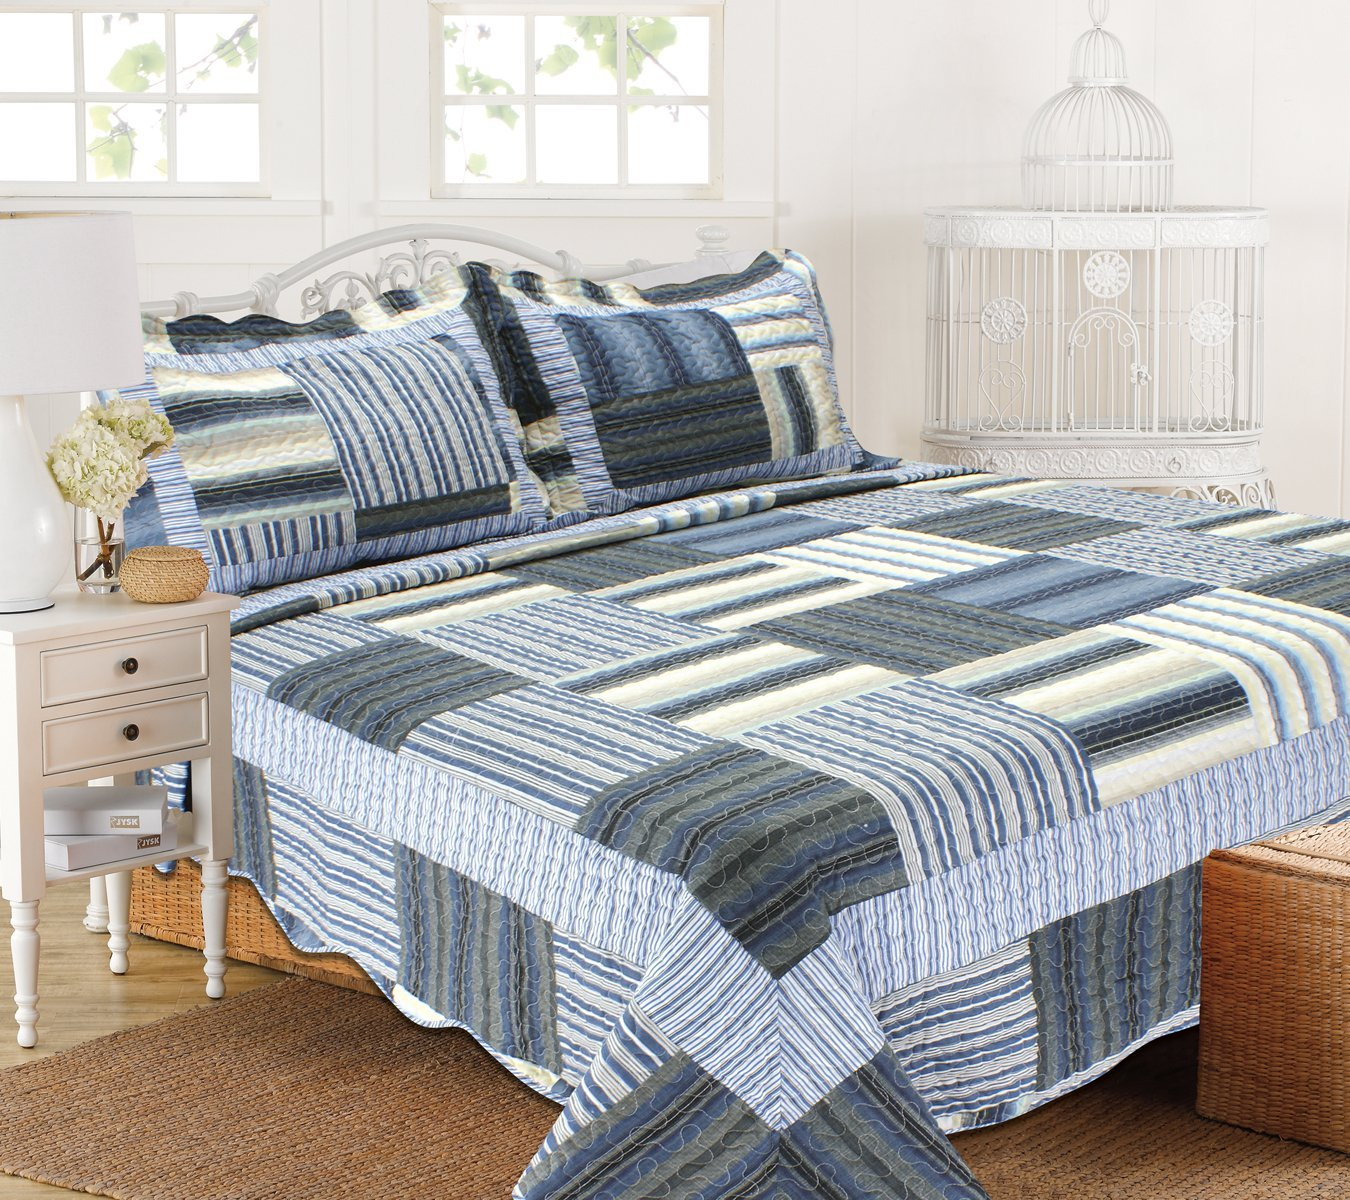 all for you 3pc reversible quilt set bedspread and coverlet with flower prints